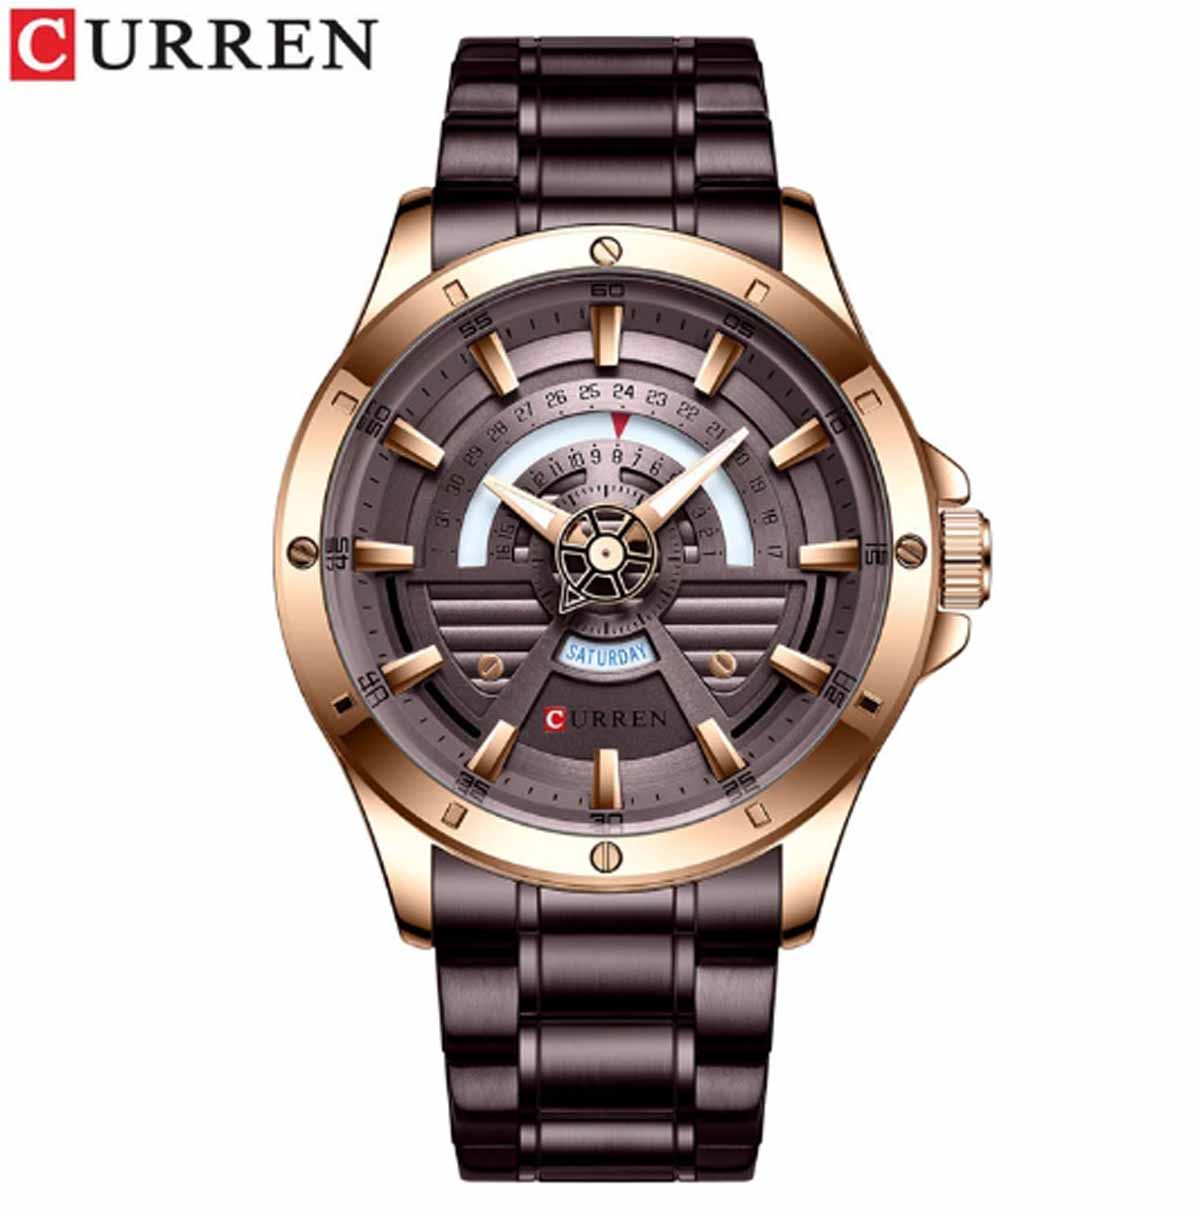 CURREN Luxury Fashion,Casual,Business Quartz Stainless Steel Waterproof With Box And Bag -8381